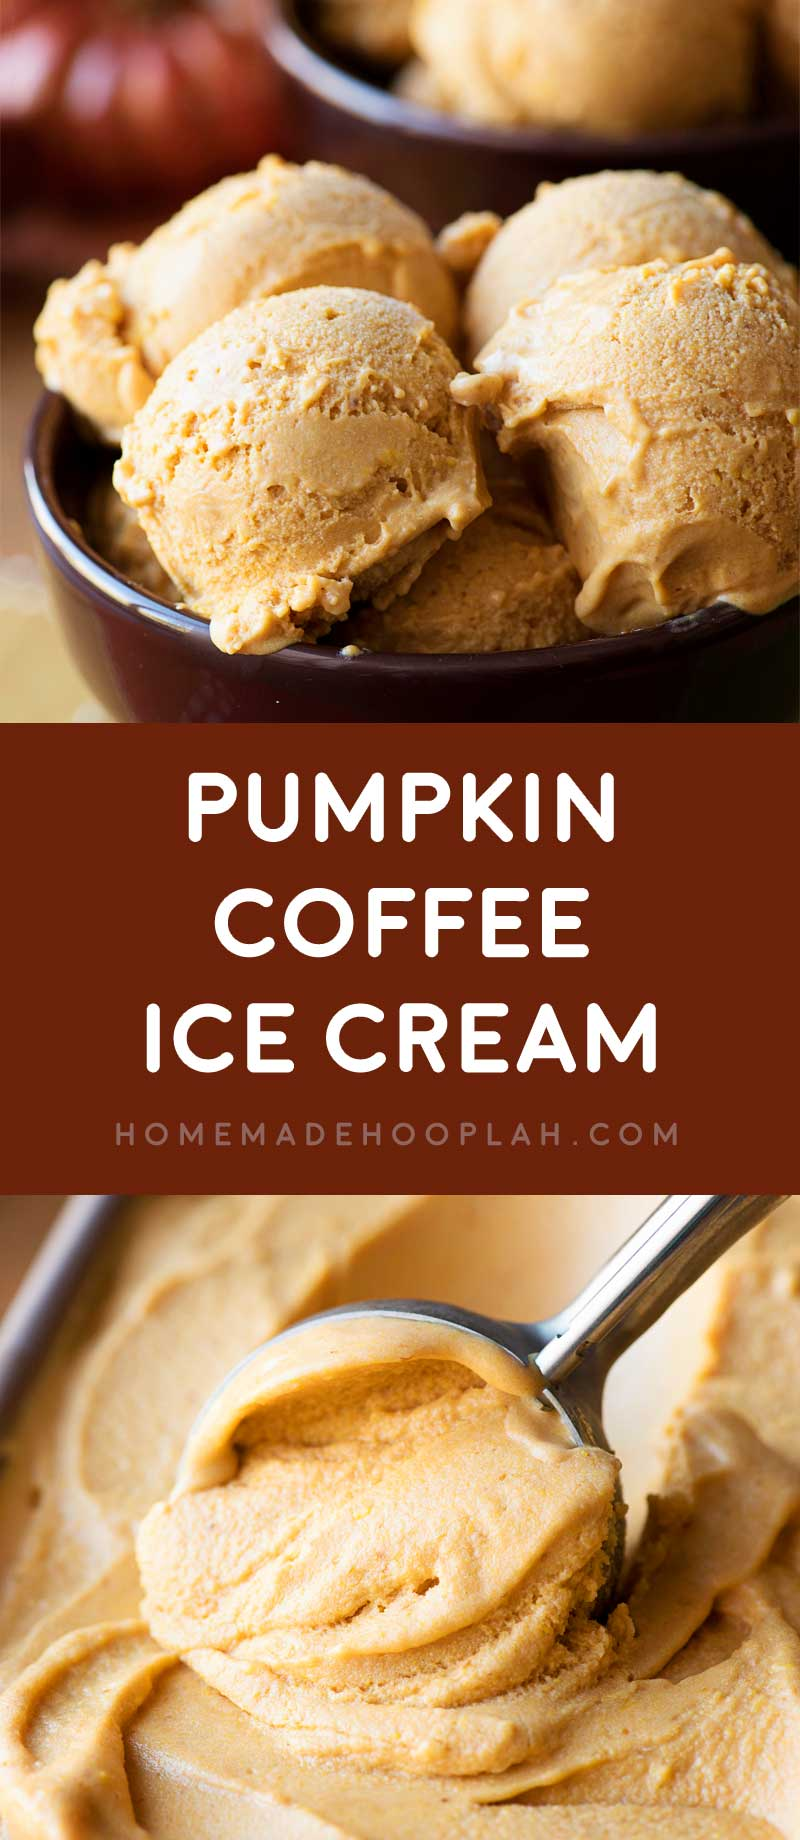 Pumpkin Coffee Ice Cream! Creamy and decadent pumpkin pie spice ice cream with a splash of pumpkin coffee. It's the perfect